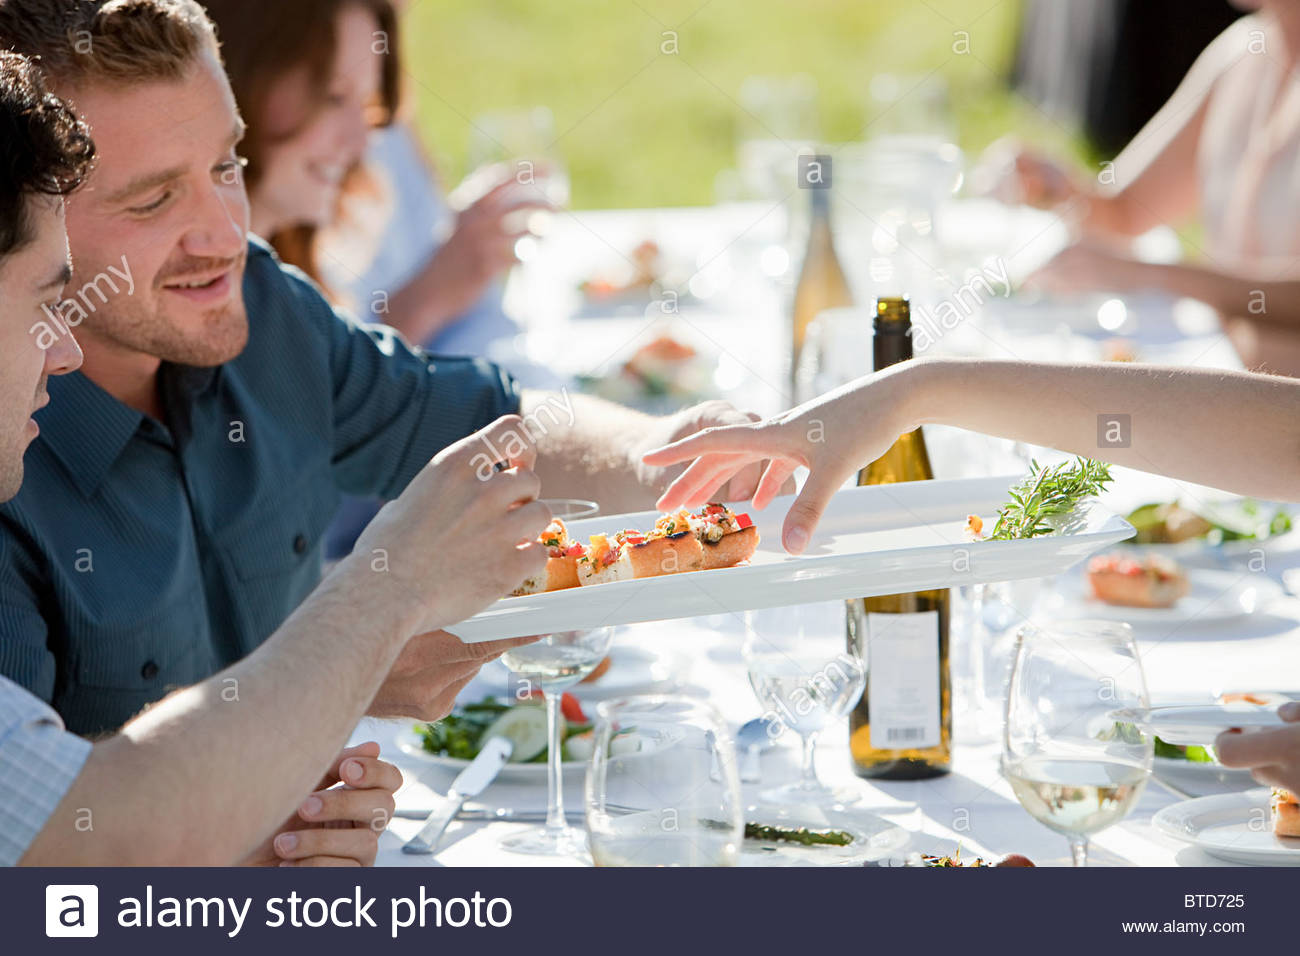 Les gens à dîner en plein air Photo Stock